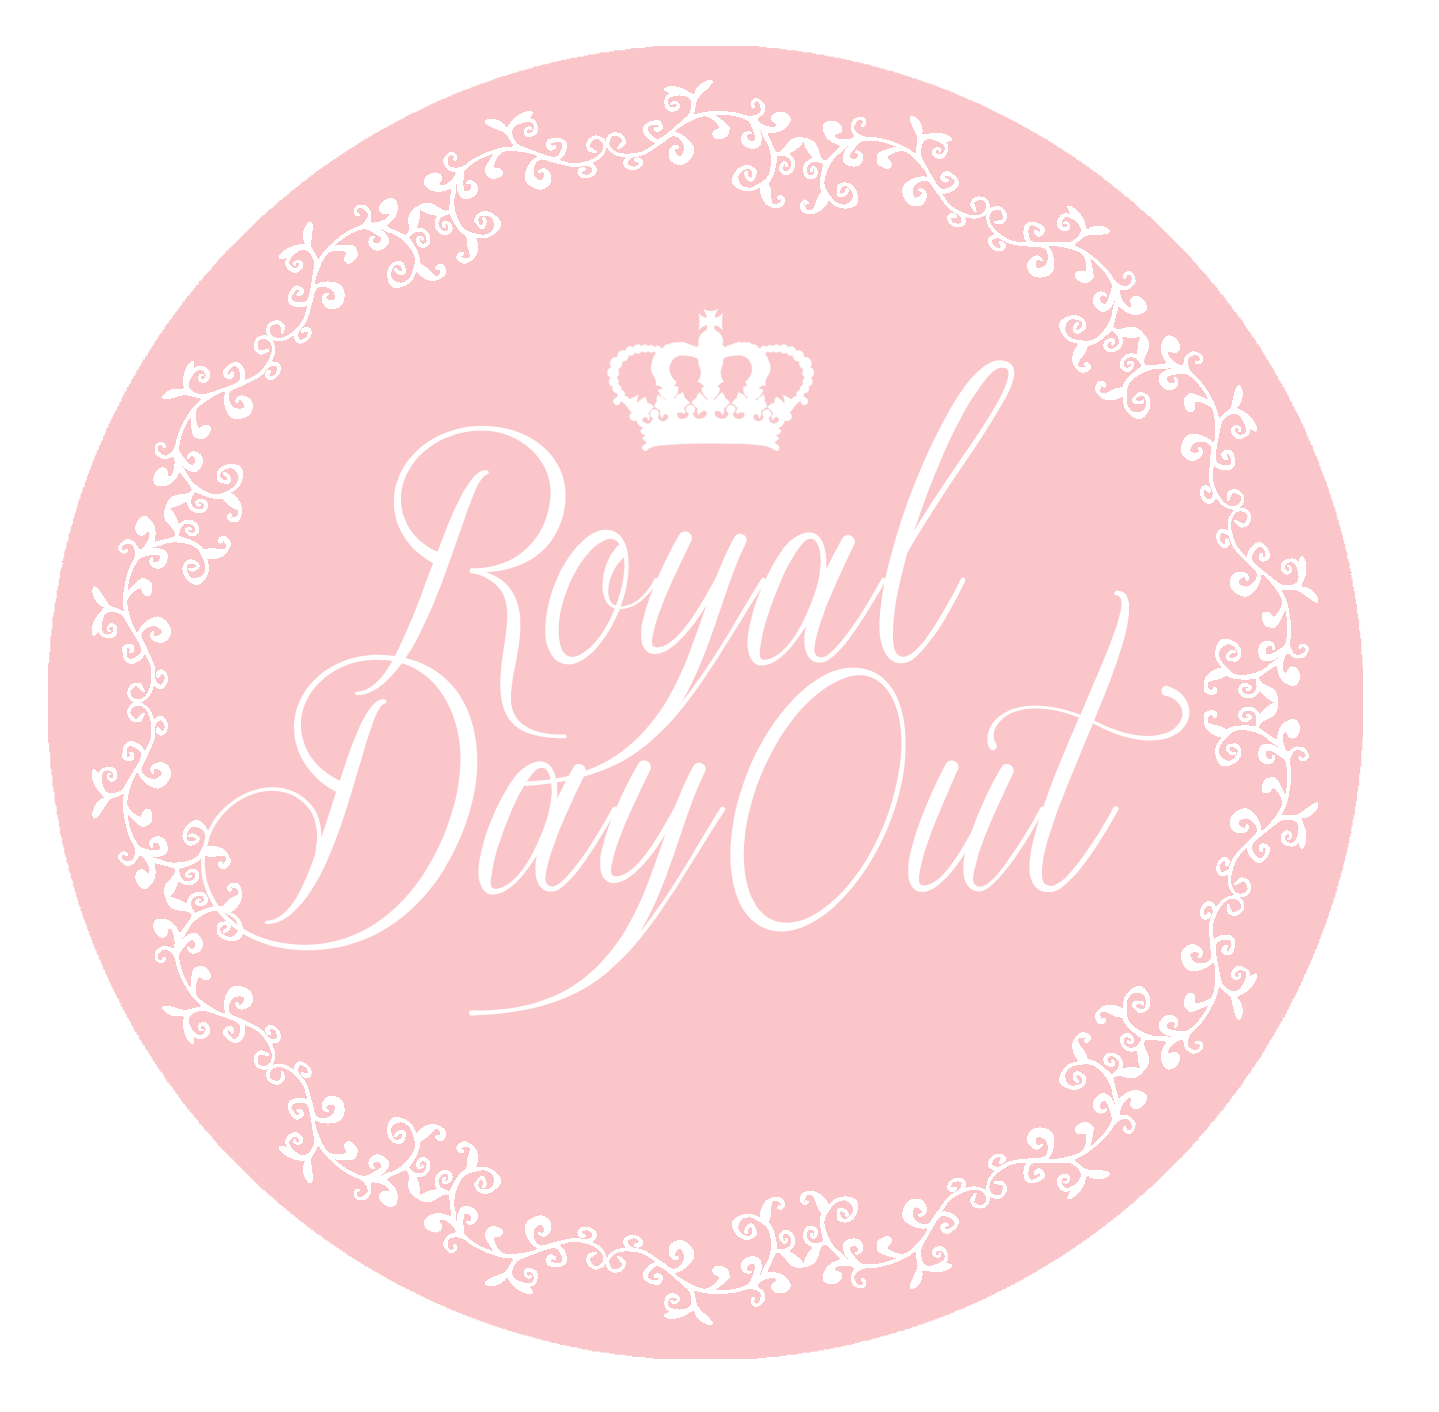 Royal Day Out